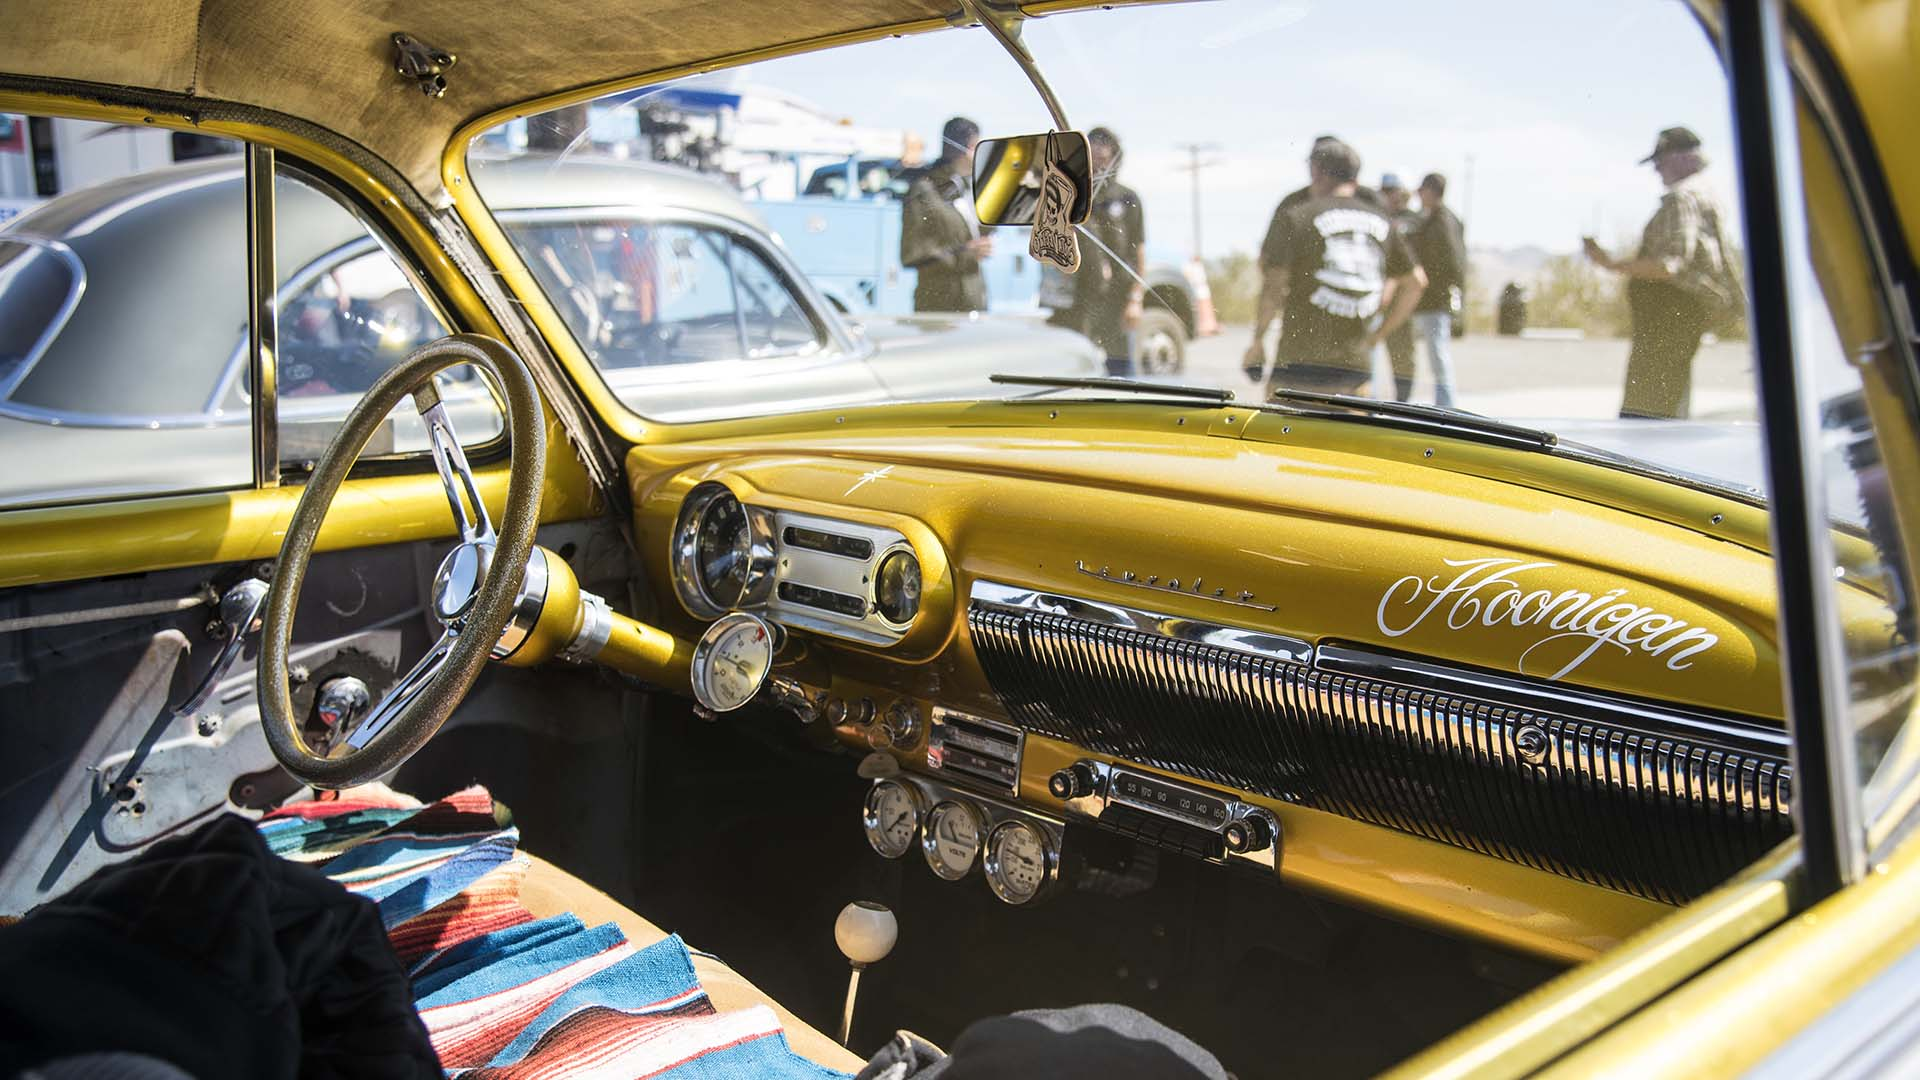 Classic hot rod enthusiasts take a break from driving old Route 66 in Ludlow, California.